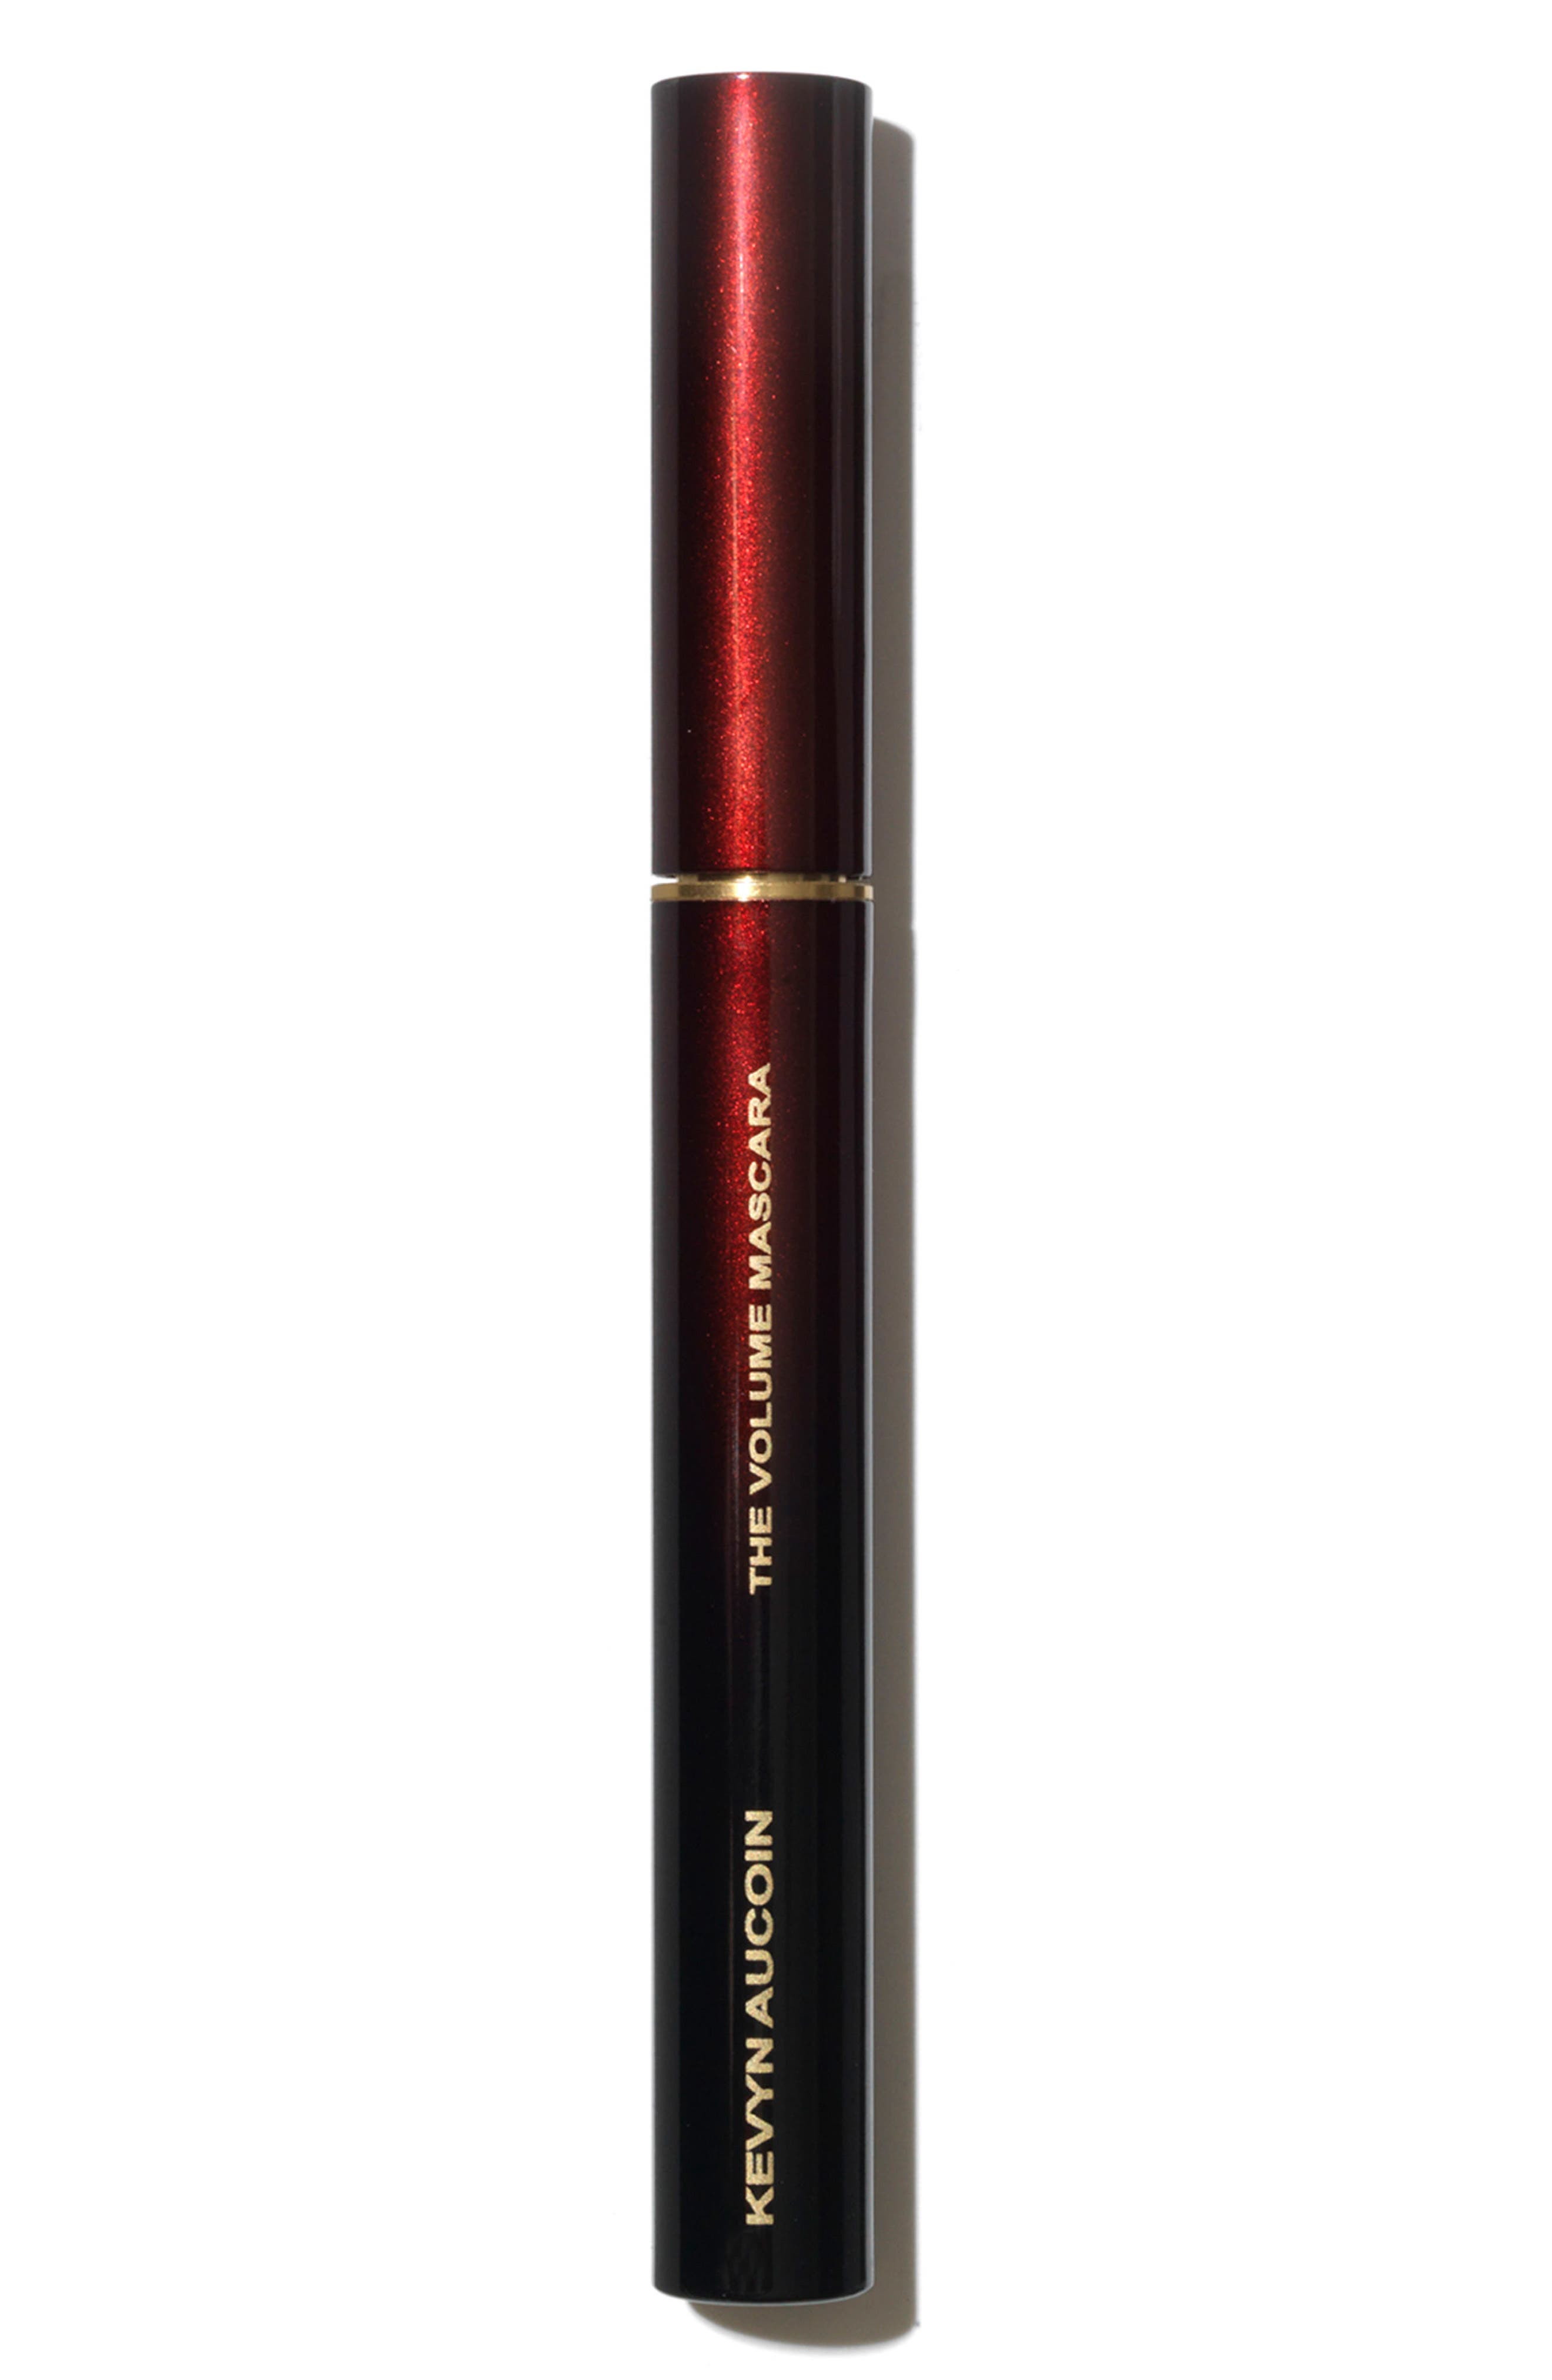 SPACE.NK.apothecary Kevyn Aucoin Beauty The Volume Mascara,                             Alternate thumbnail 3, color,                             Rich Pitch Black